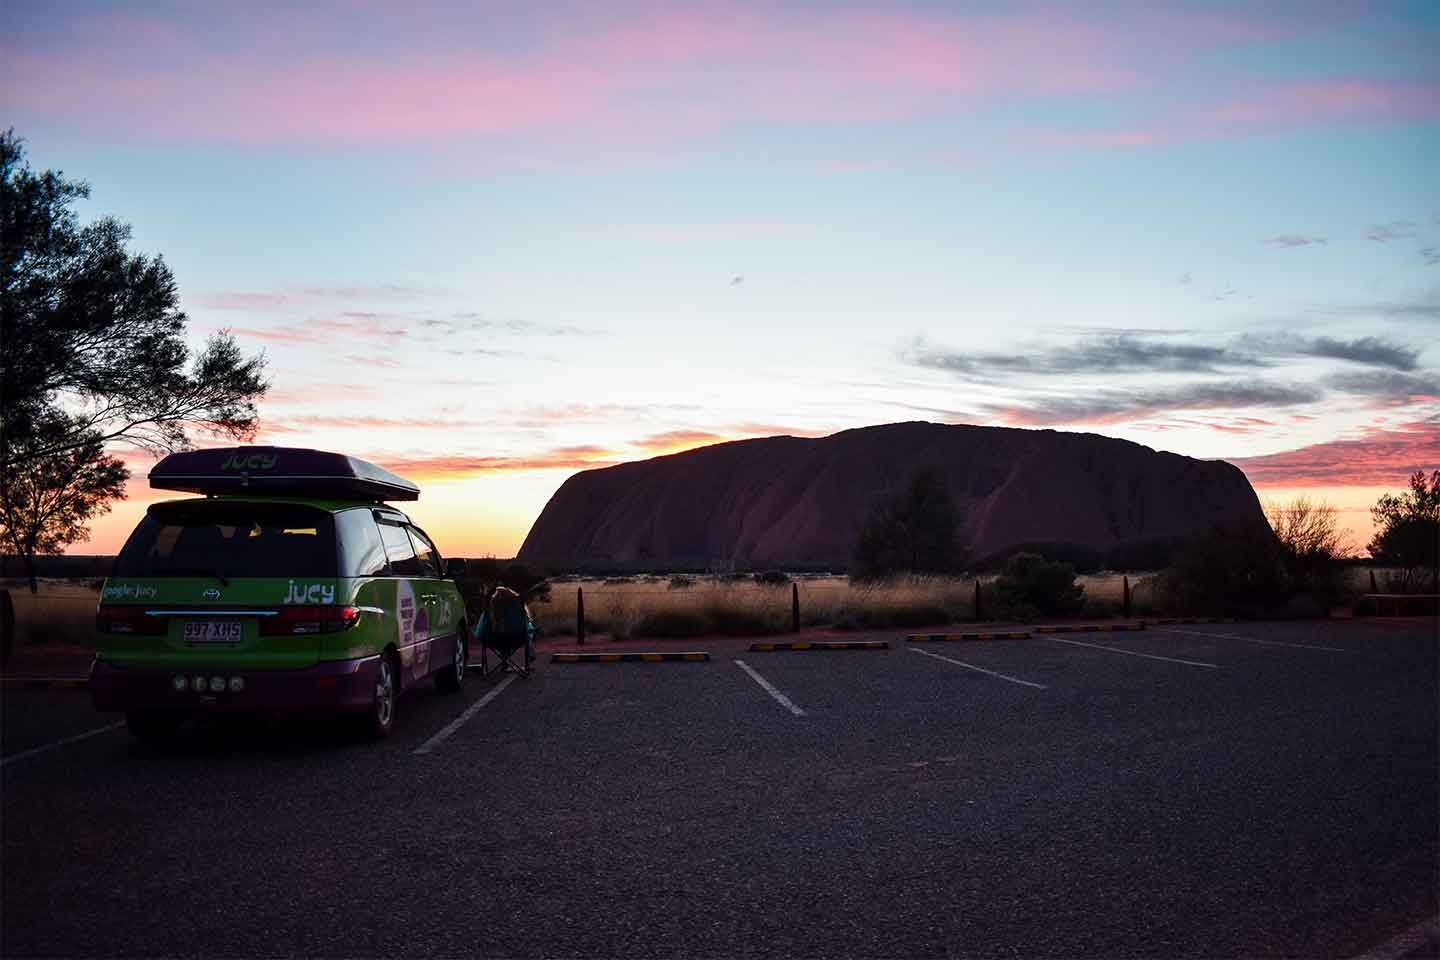 ayers rock champ parked up at sunset